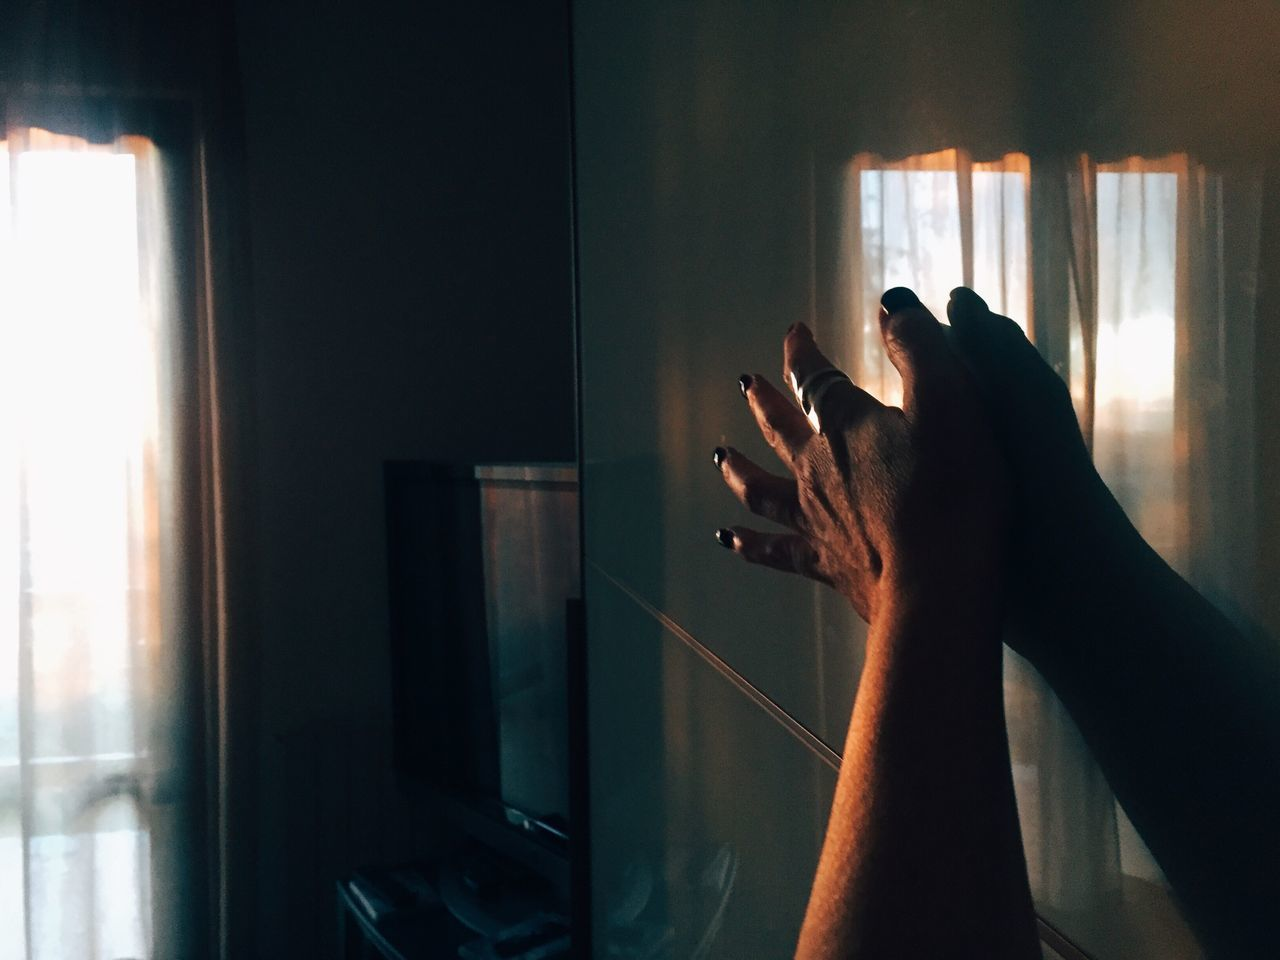 Catching Light, by Claudia Ioan Indoors  Real People Human Hand One Person Window Home Interior Close-up Day VSCO Mobile Photography Iphone6 Home Curtain Minimalist Architecture